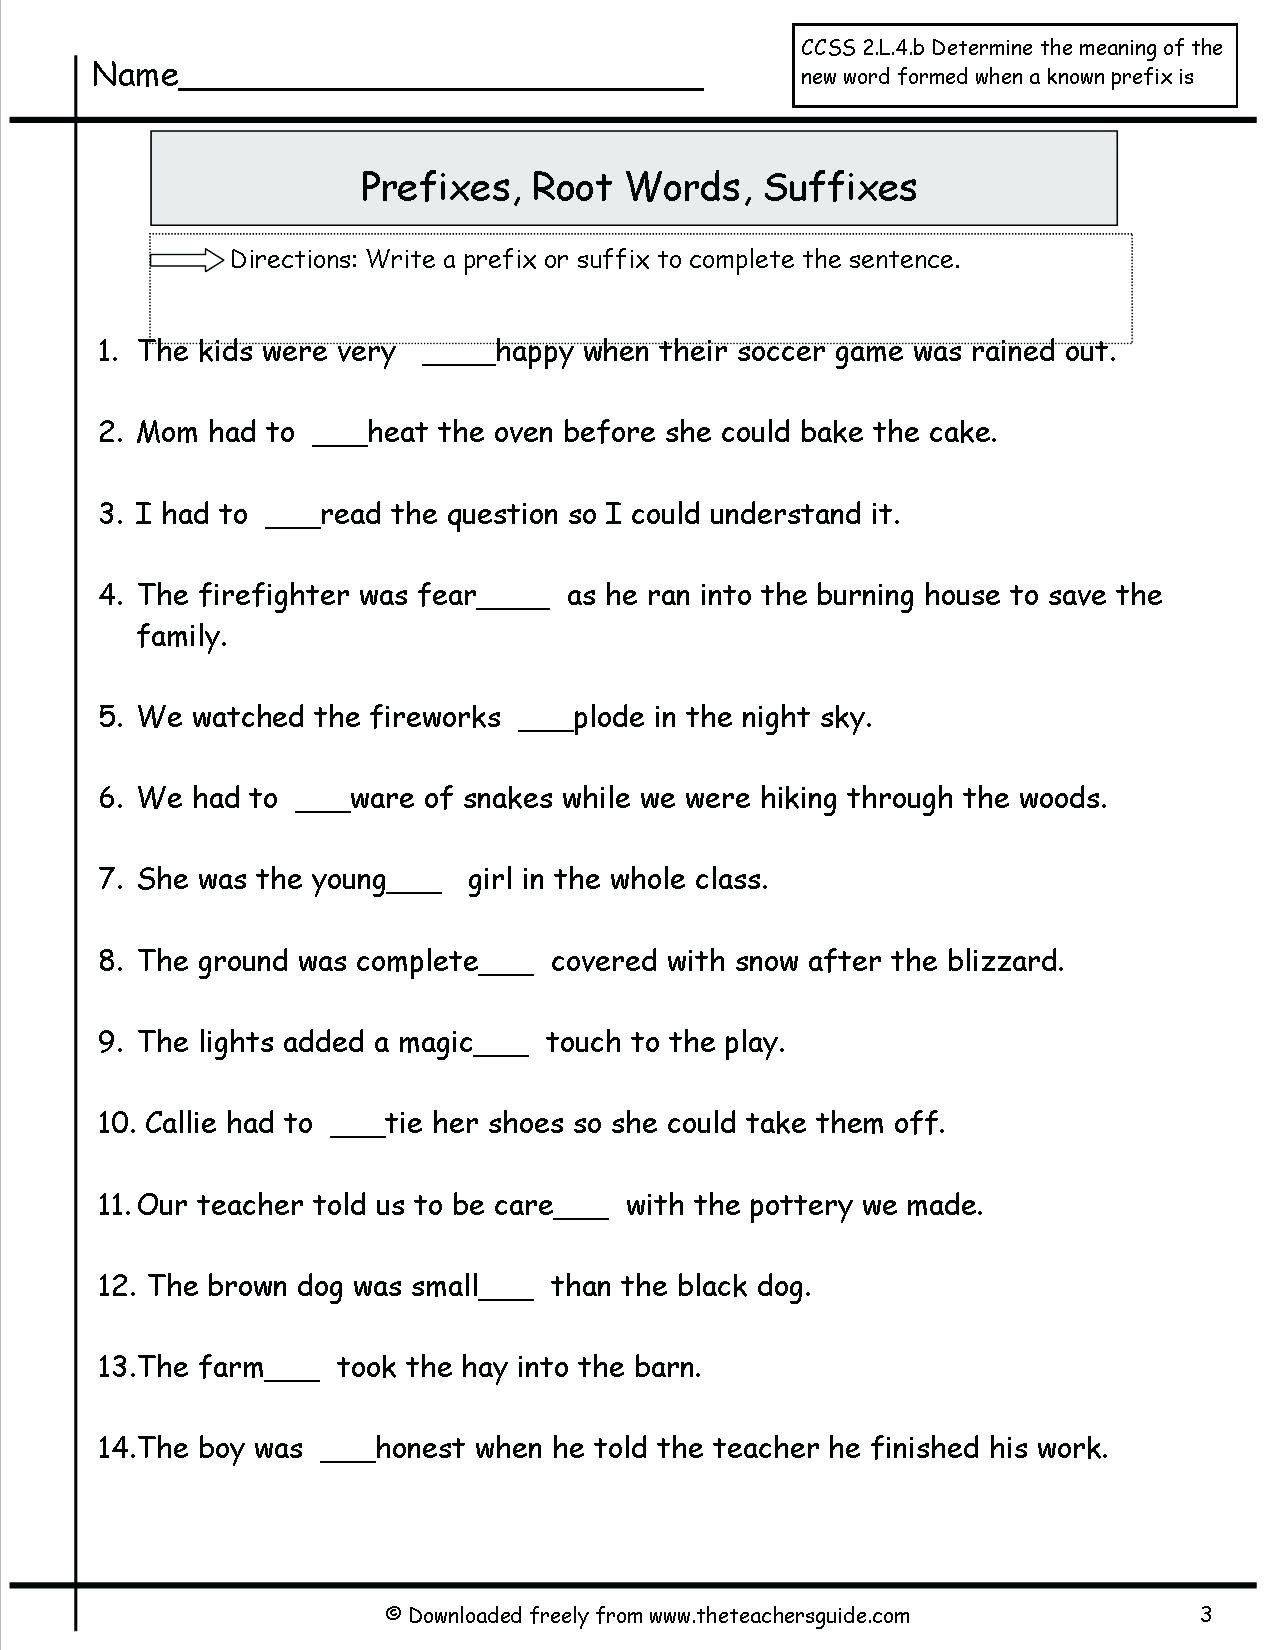 Suffix Worksheets for 4th Grade 3rd Grade Prefixes and Suffixes Worksheets  Root Words   Suffixes worksheets [ 1650 x 1275 Pixel ]